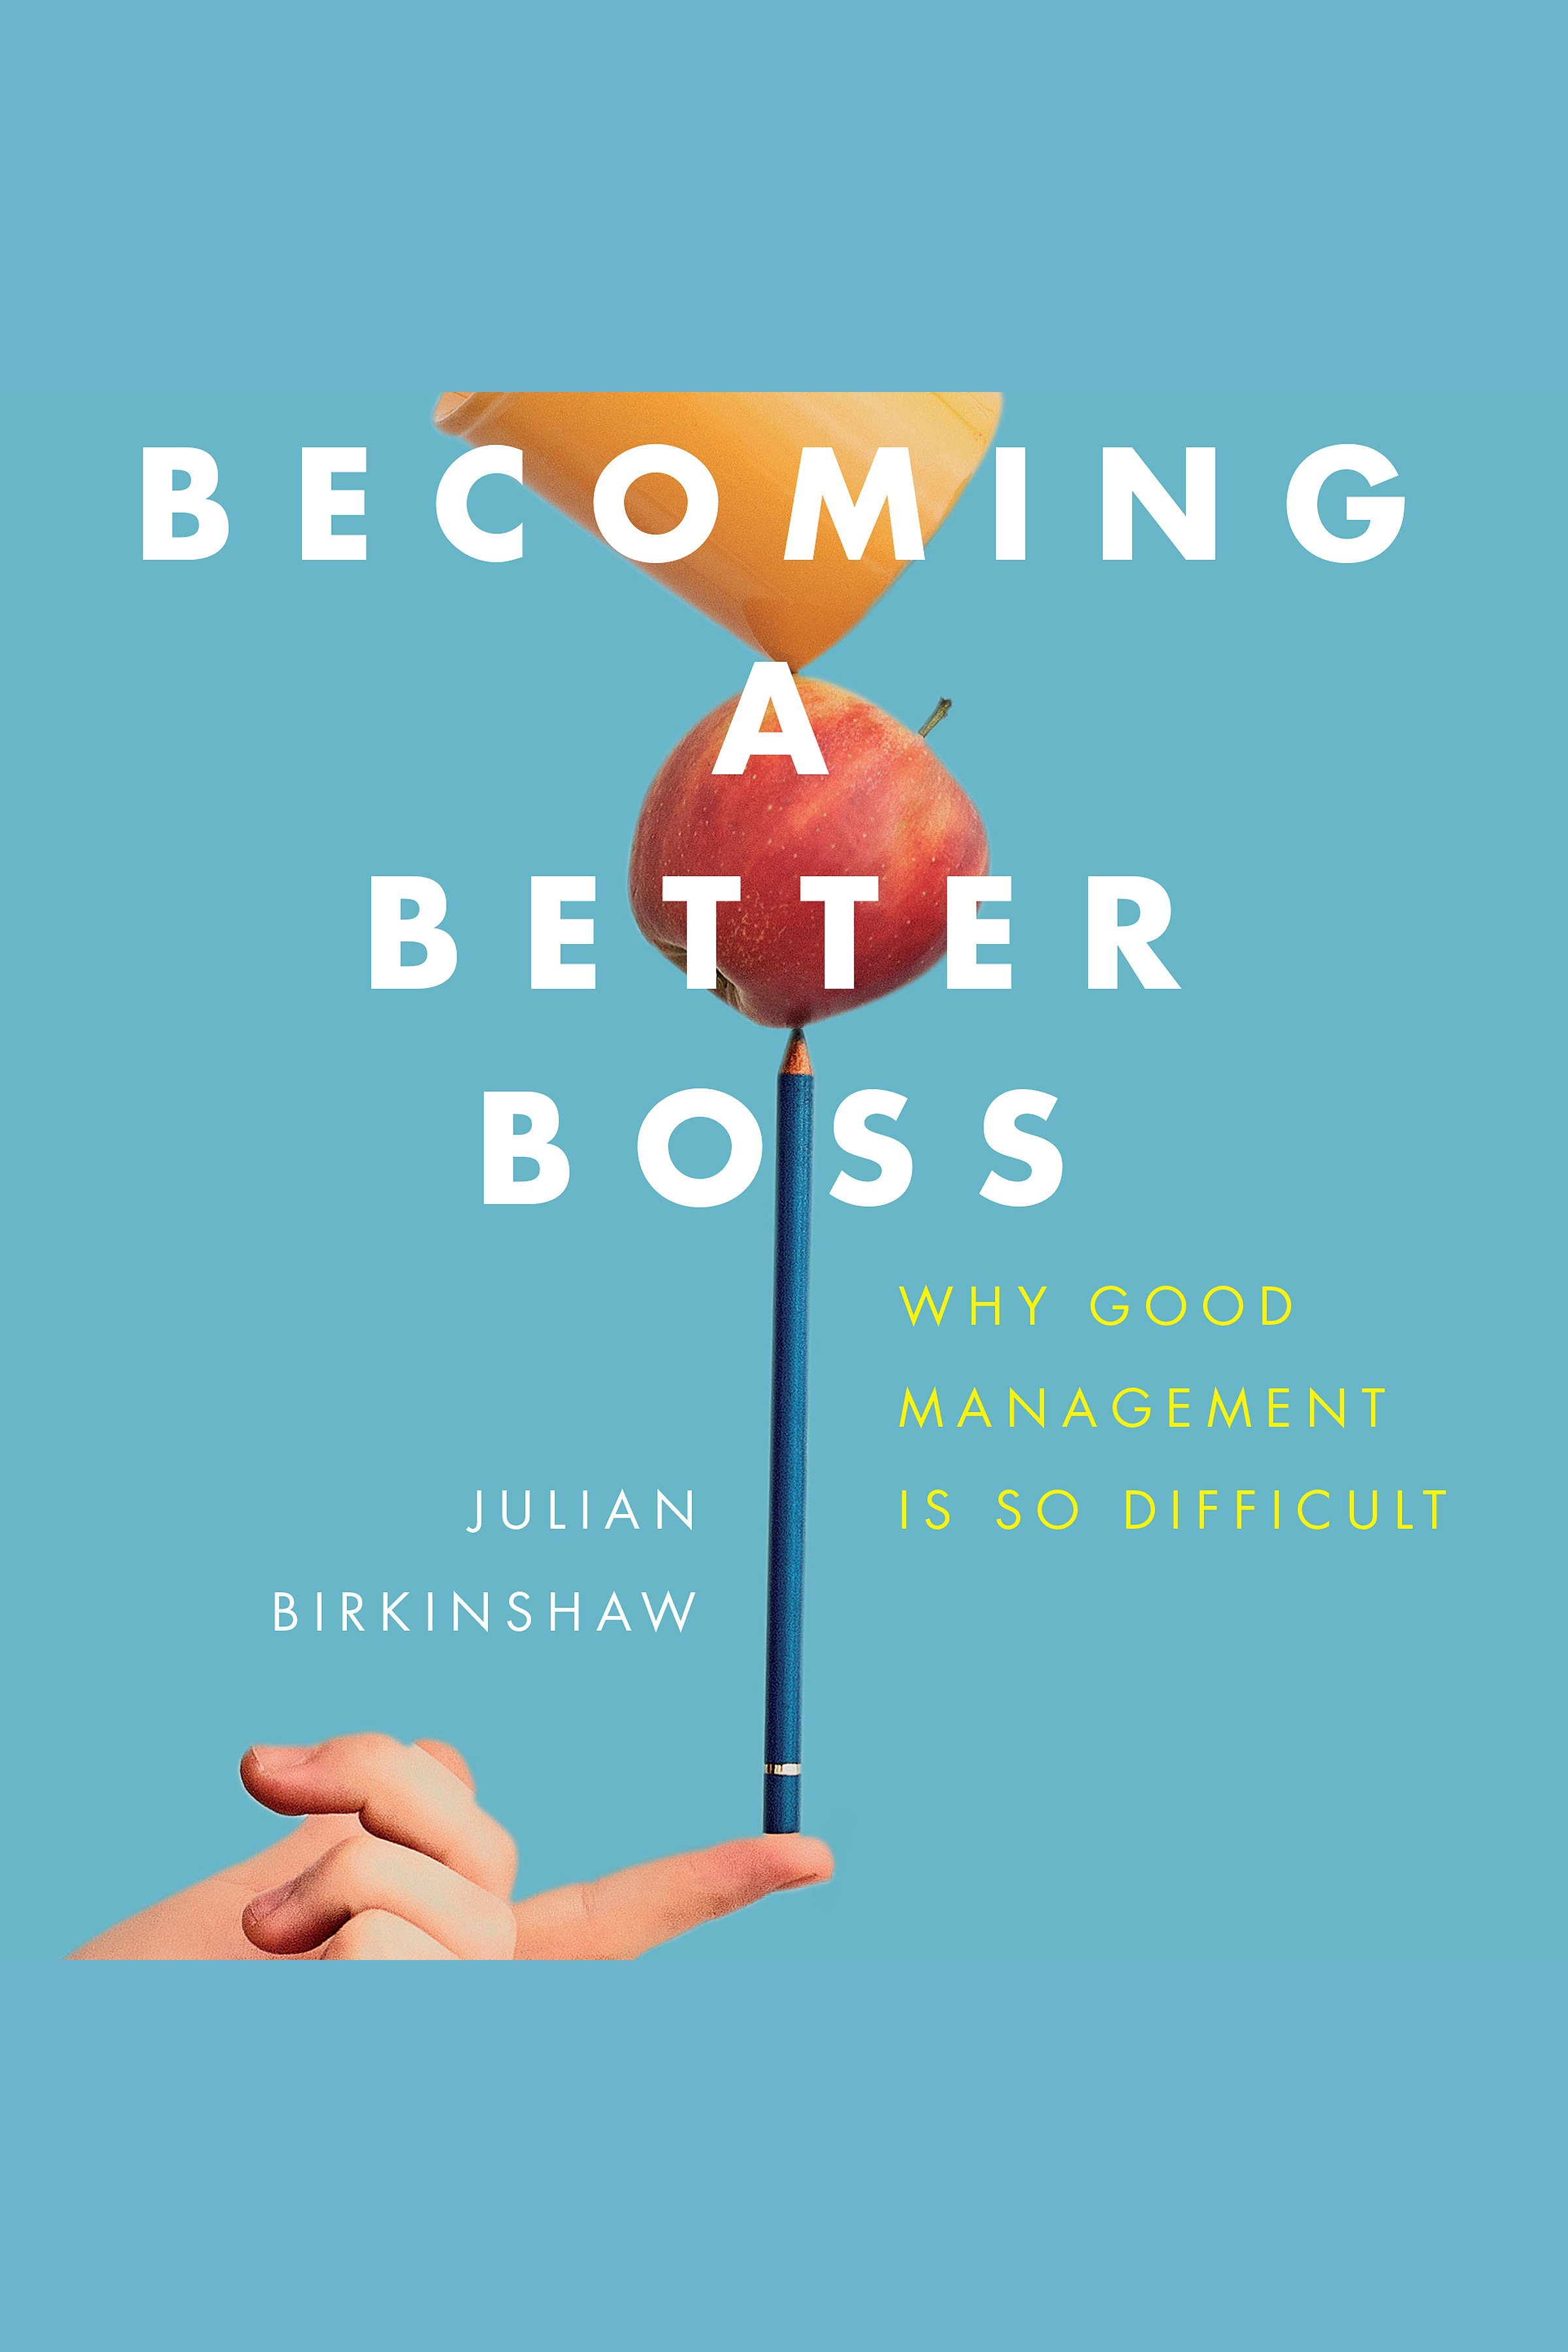 Becoming A Better Boss Why Good Management is So Difficult